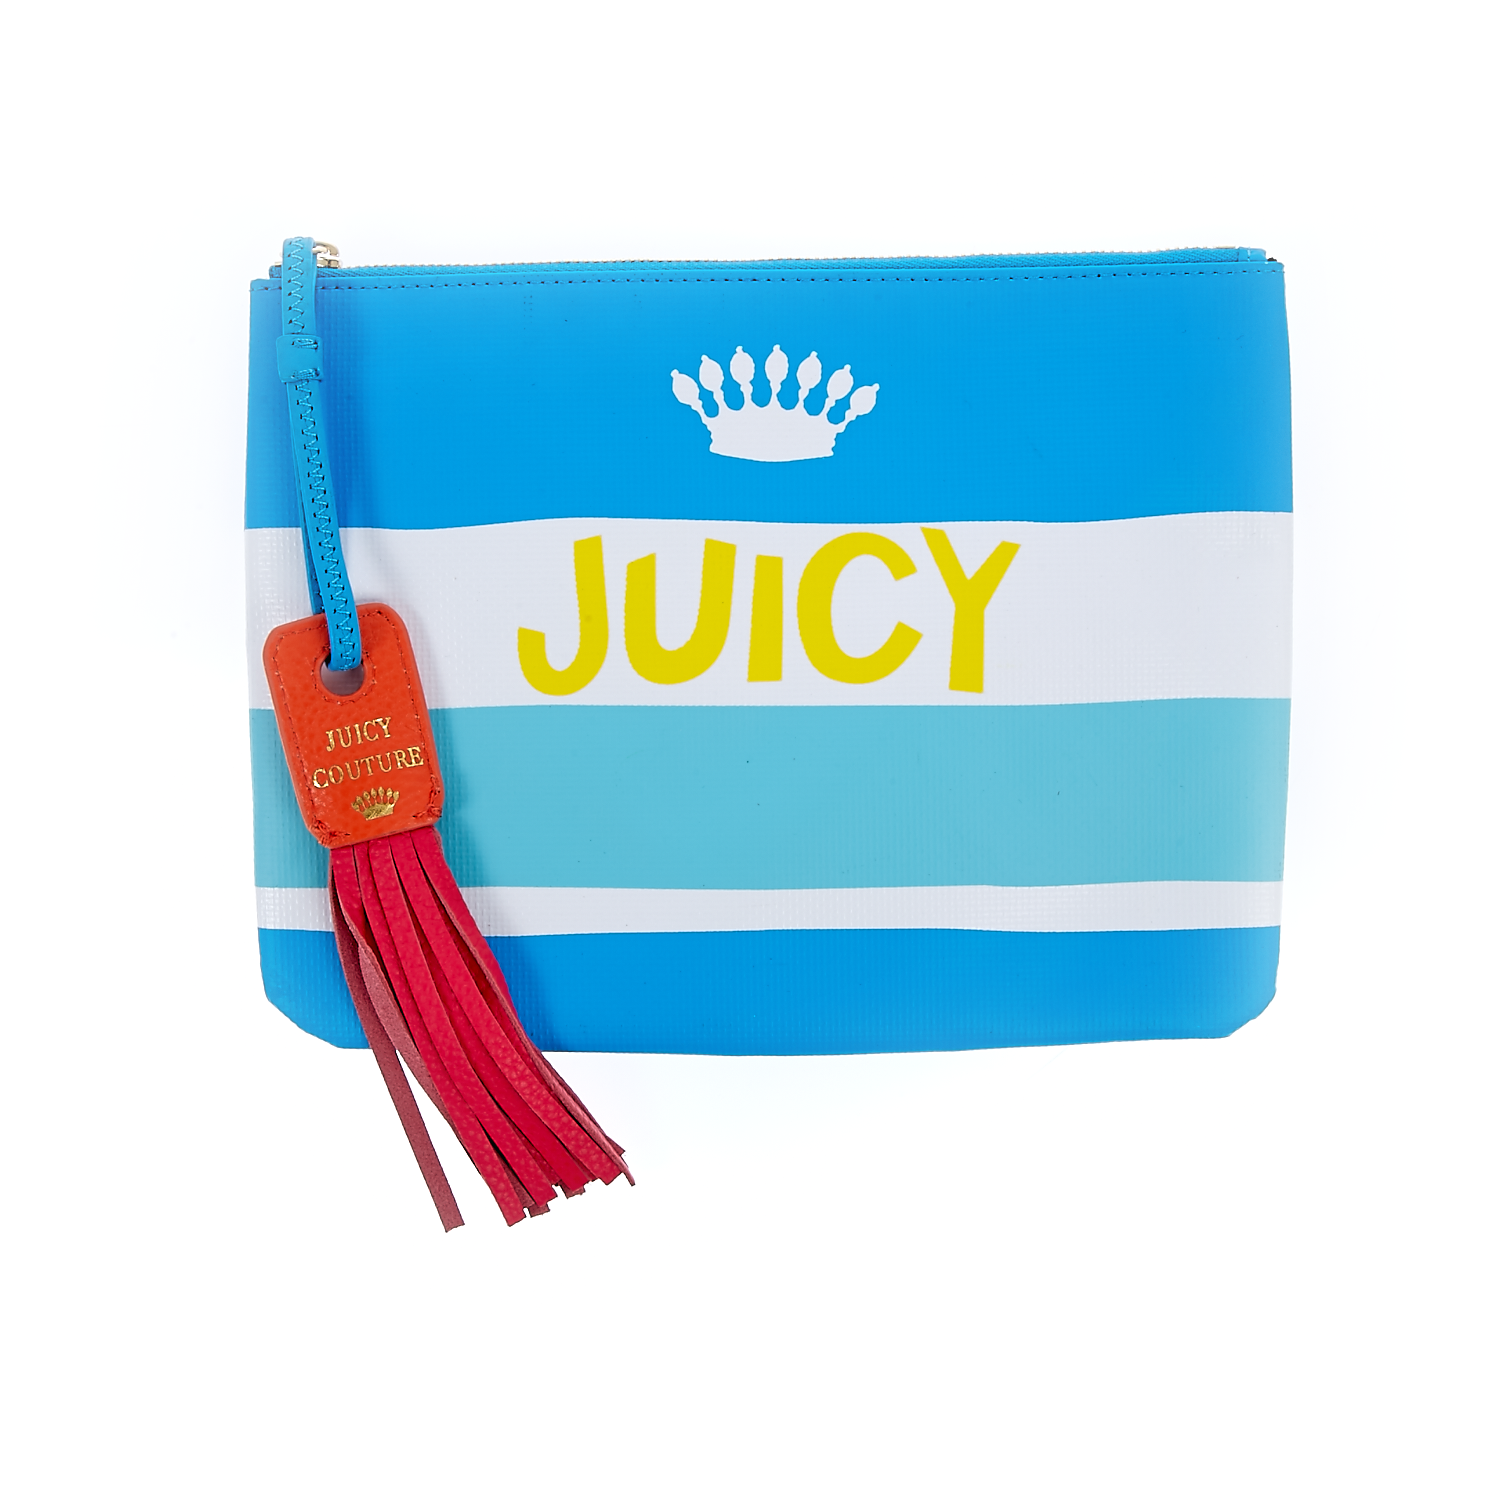 JUICY COUTURE – Πορτοφόλι-τσαντάκι Juicy Couture μπλε-λευκό 1441468.0-00T1